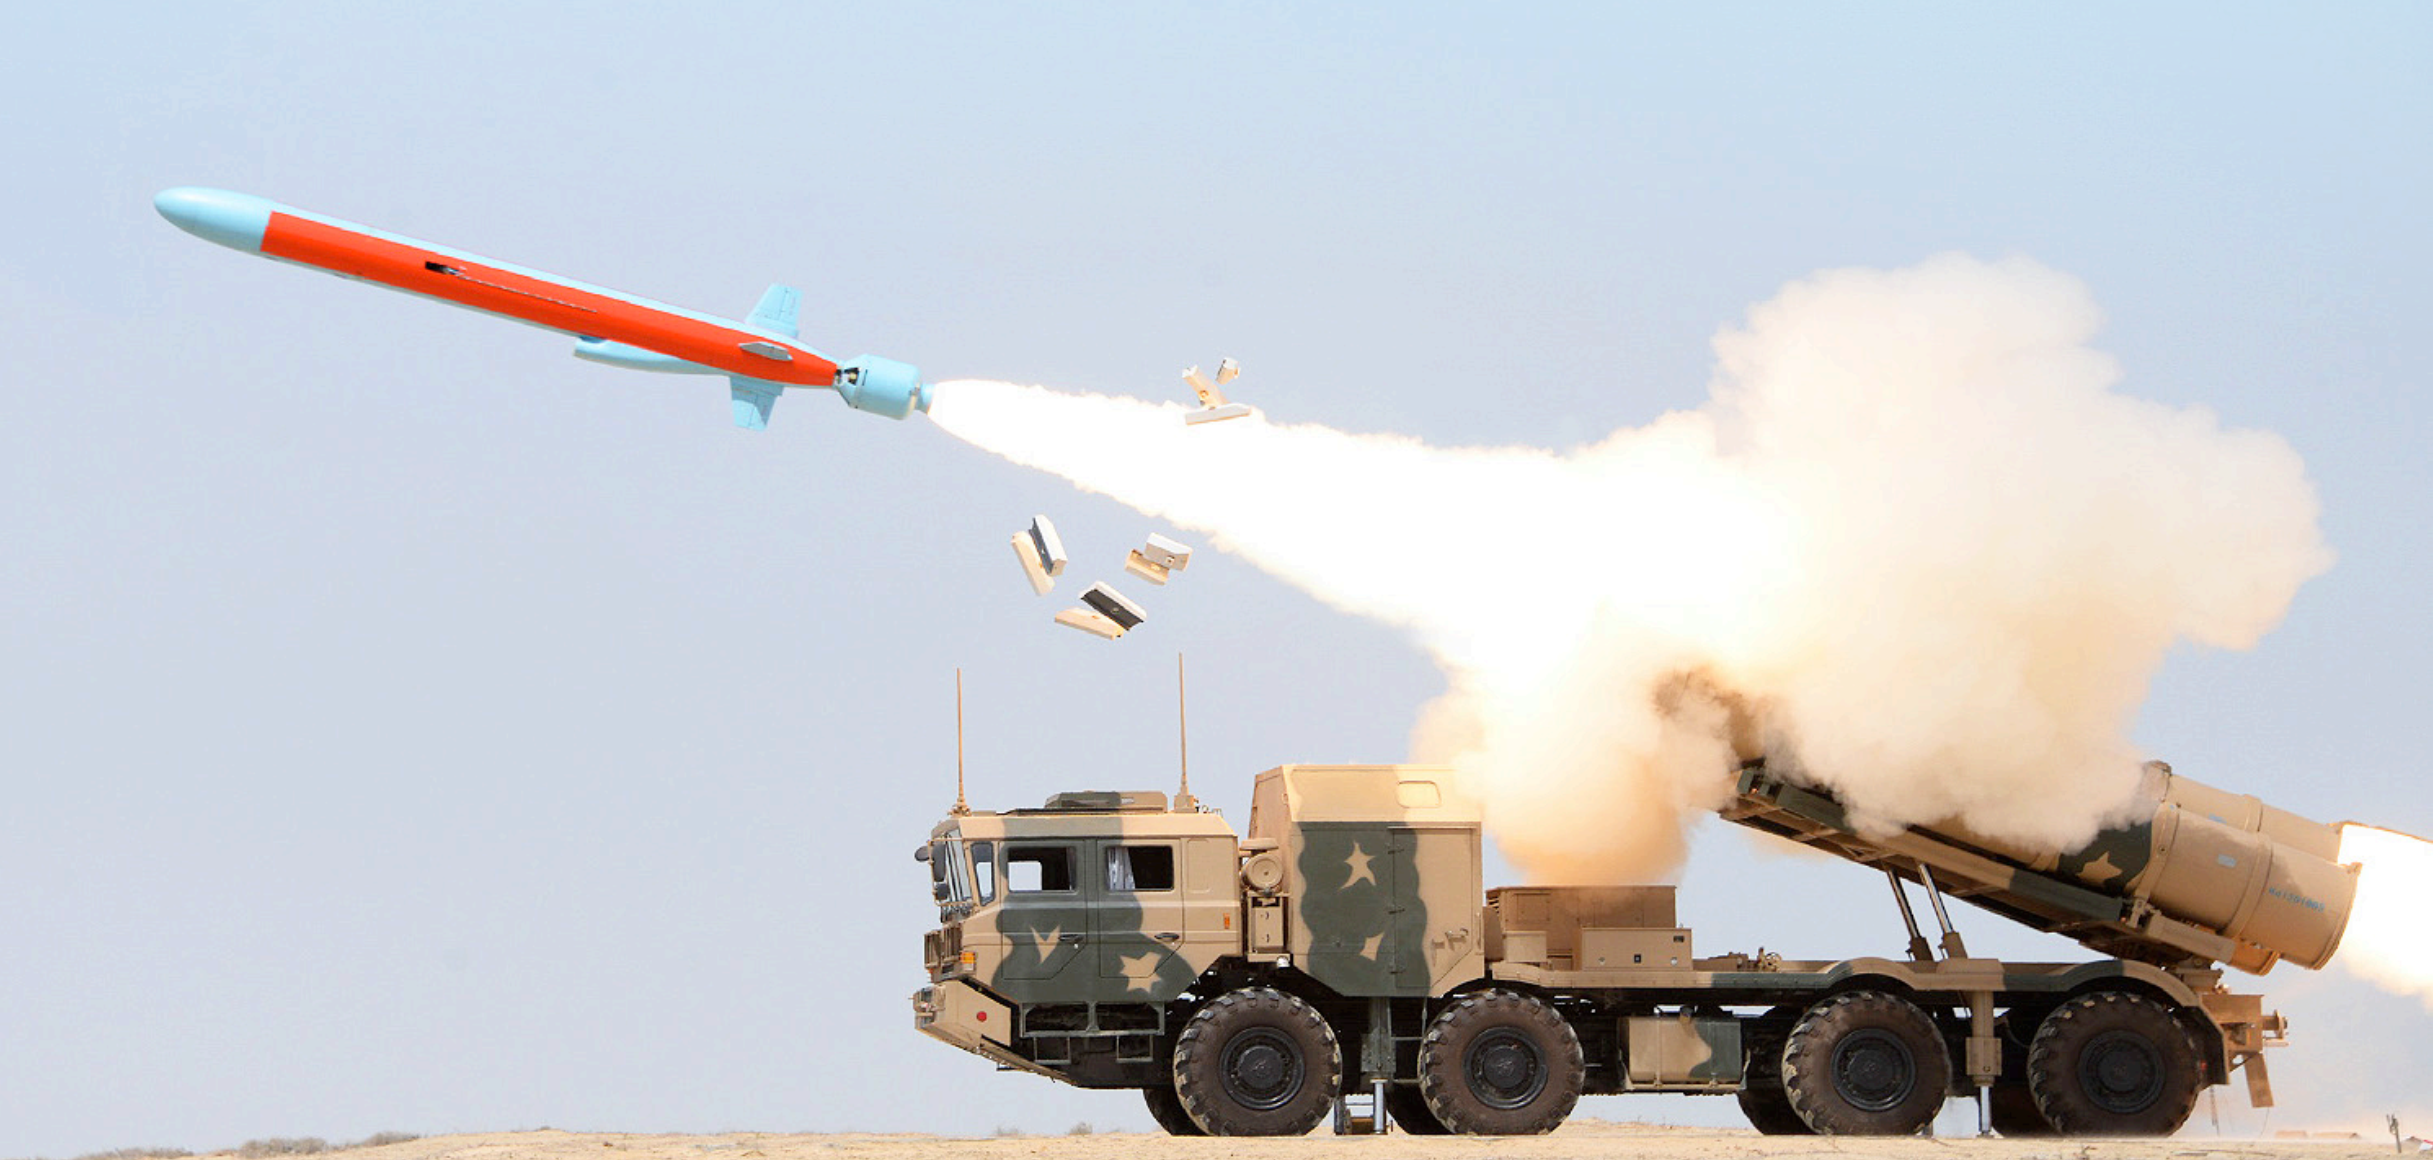 Pakistan Navy released pictures of Zarb anti-ship missile test firing